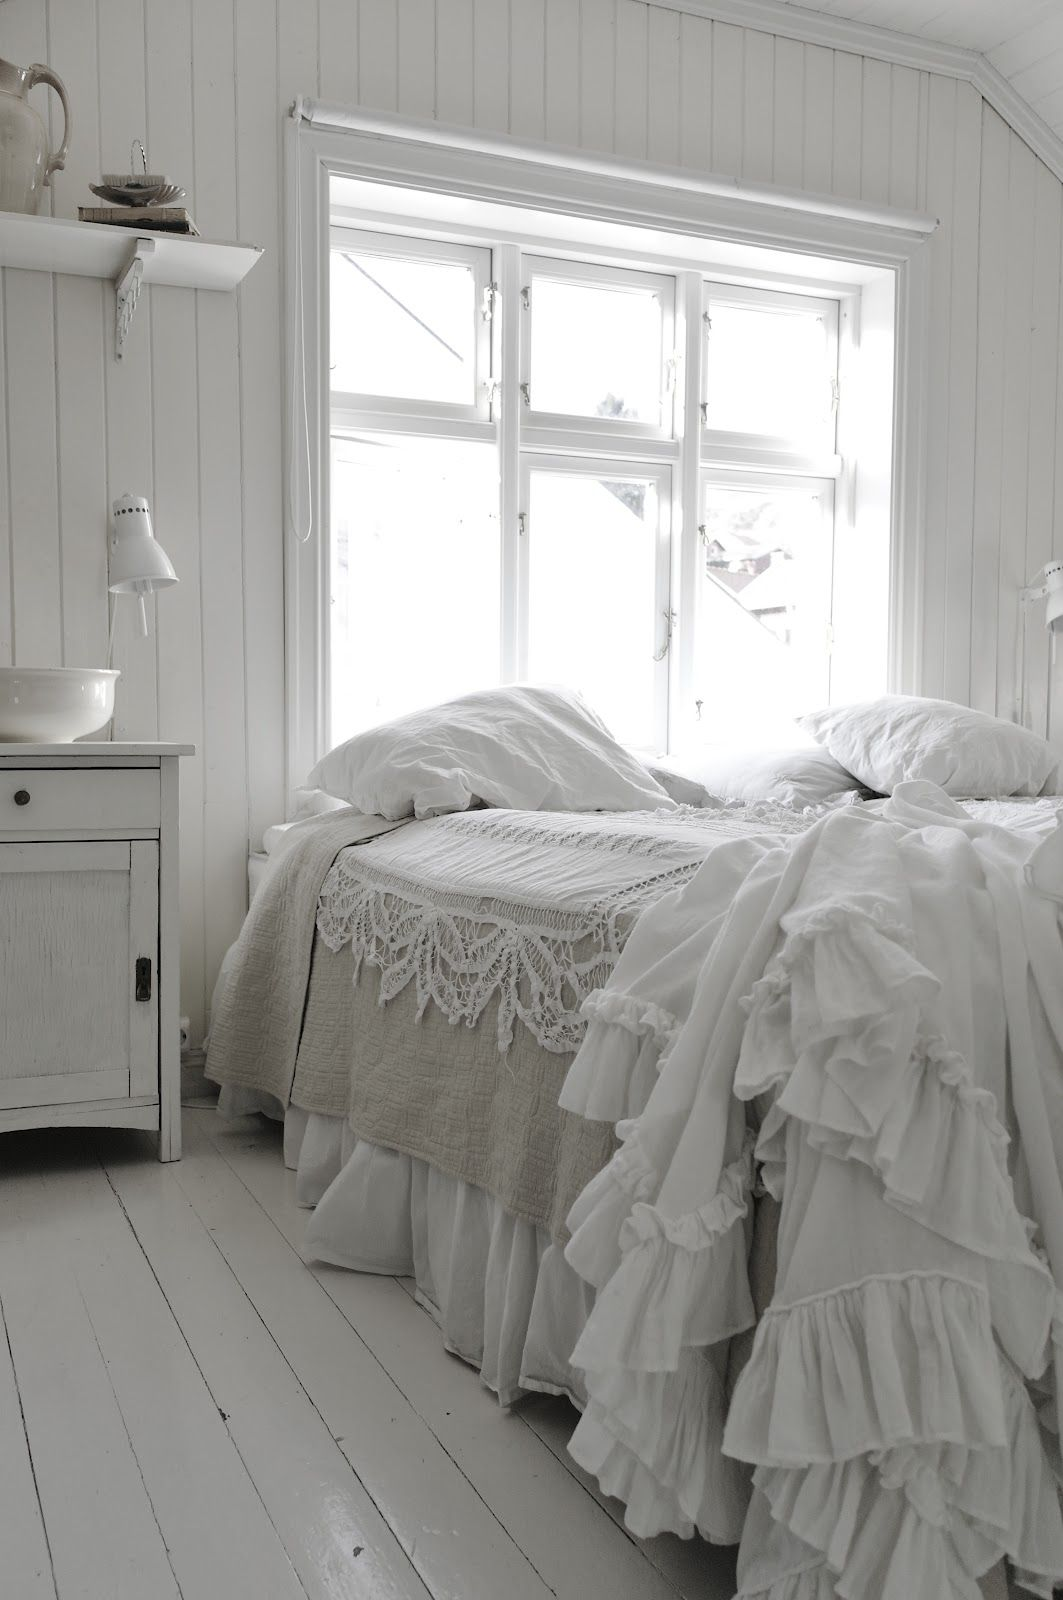 White bedroom with contrast of natural bed cover, lots of